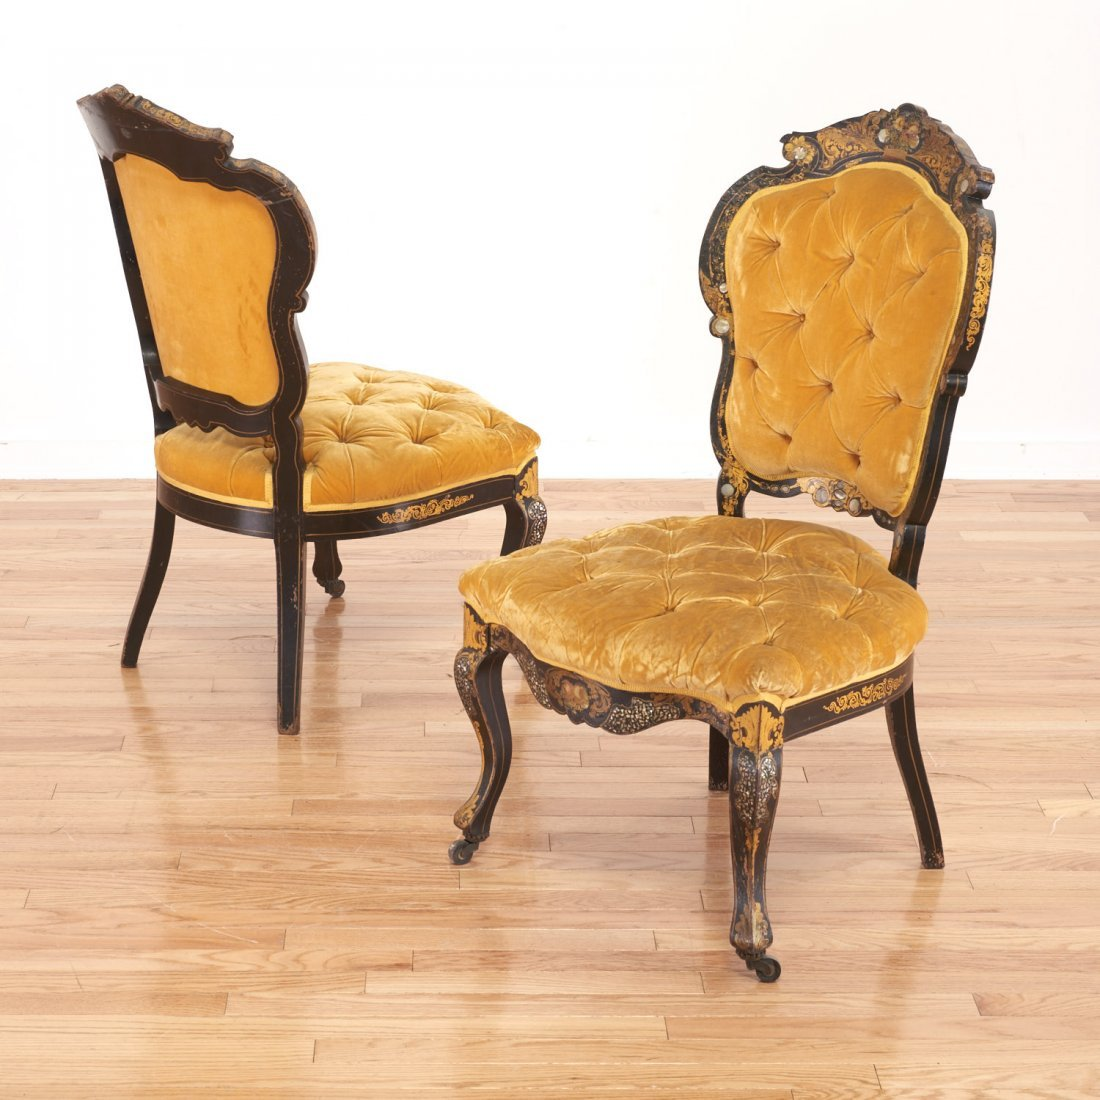 Pair Victorian inlaid, ebonized side chairs - 2